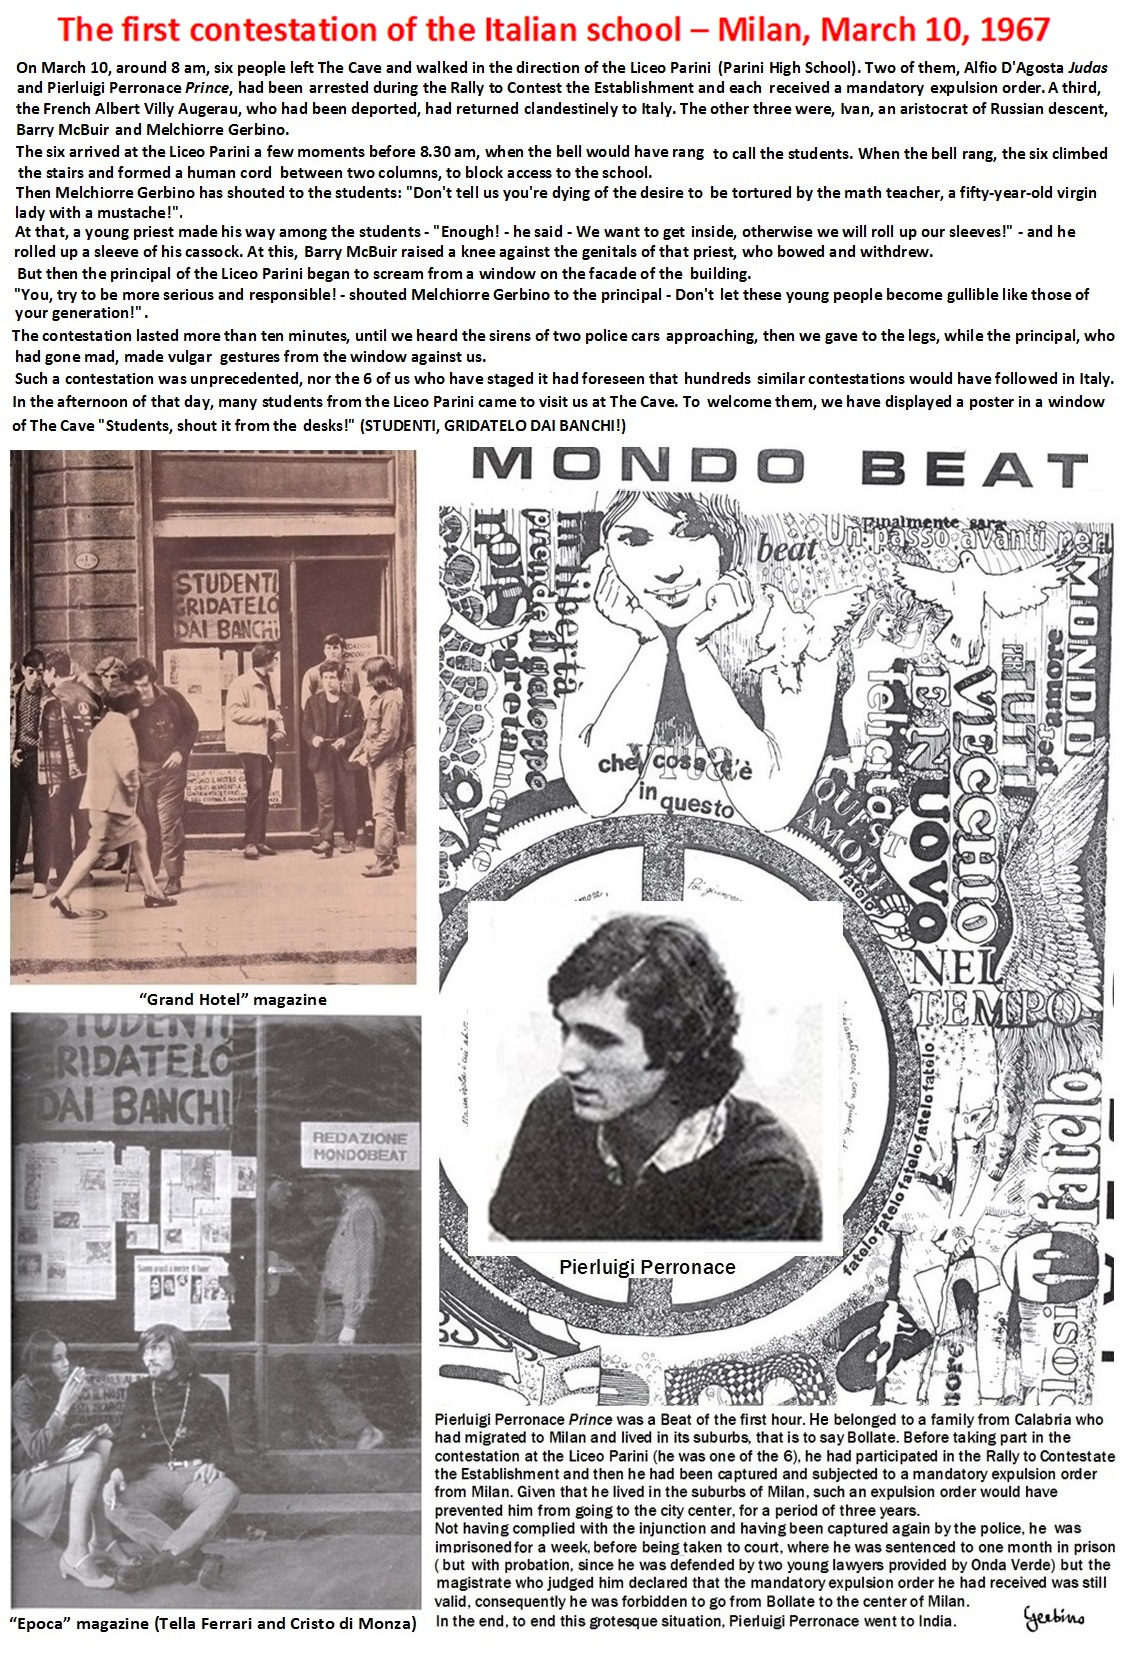 Mondo Beat staged the first contestation of Italian school on March 10, 1967, at the Liceo Parini, Milan